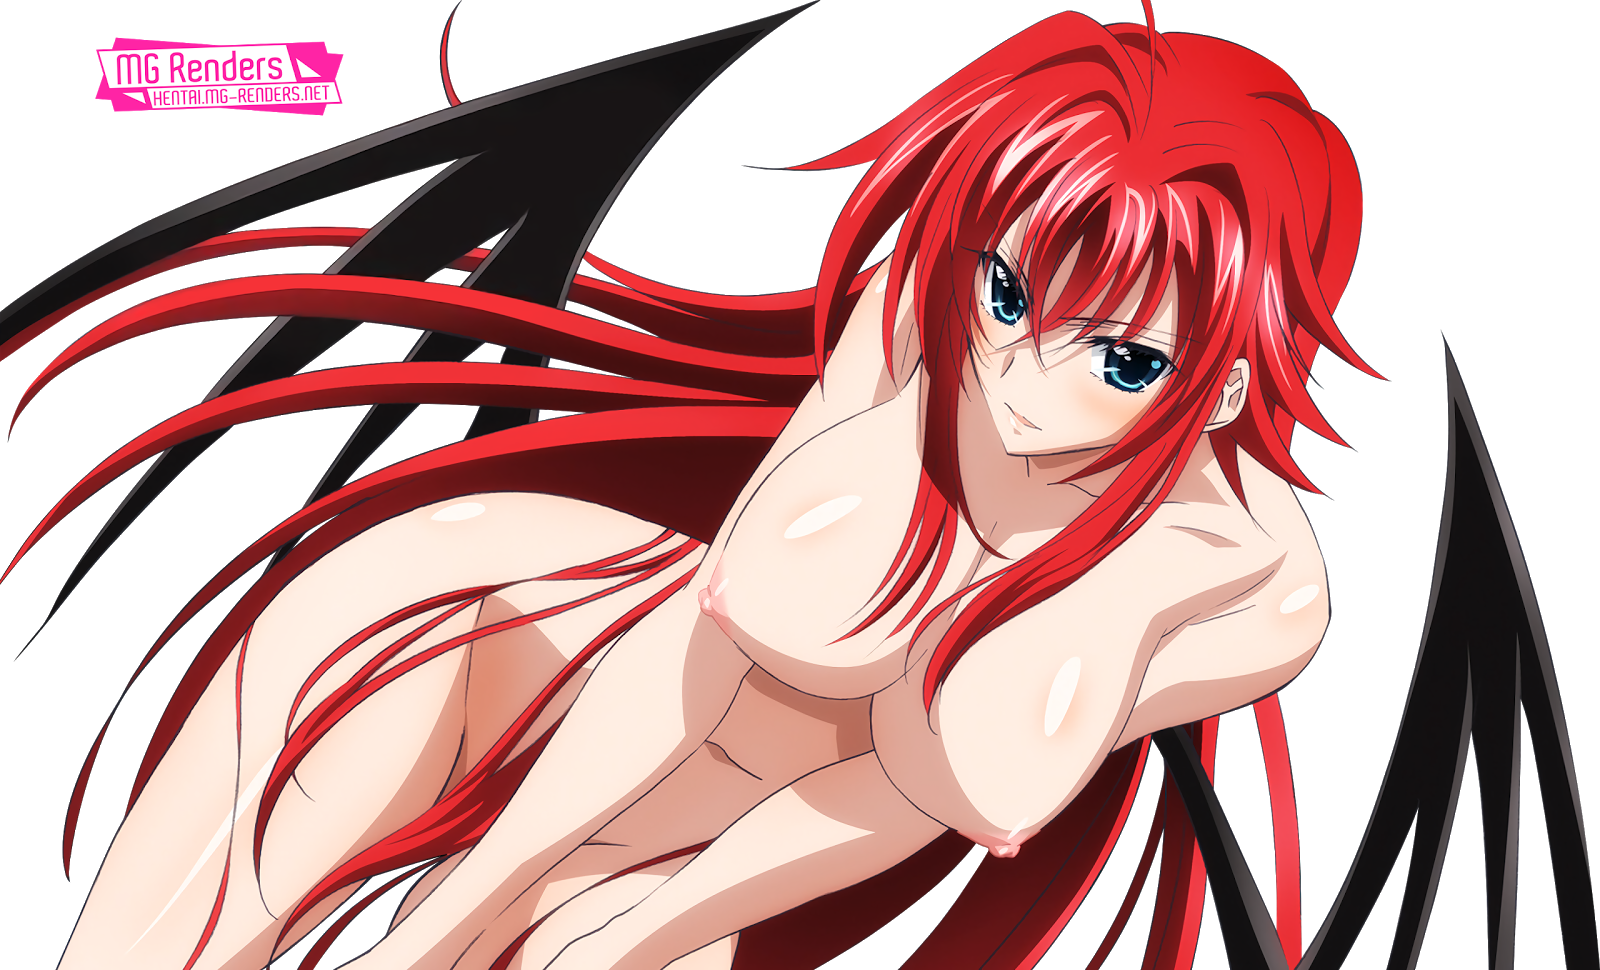 Tags: Anime, Render,  High School DxD, ハイスクールD×D, Haisukūru D×D,  Huge Breasts,  Nipples,  No bra,  No panties,  Rias Gremory, リアス・グレモリー, PNG, Image, Picture